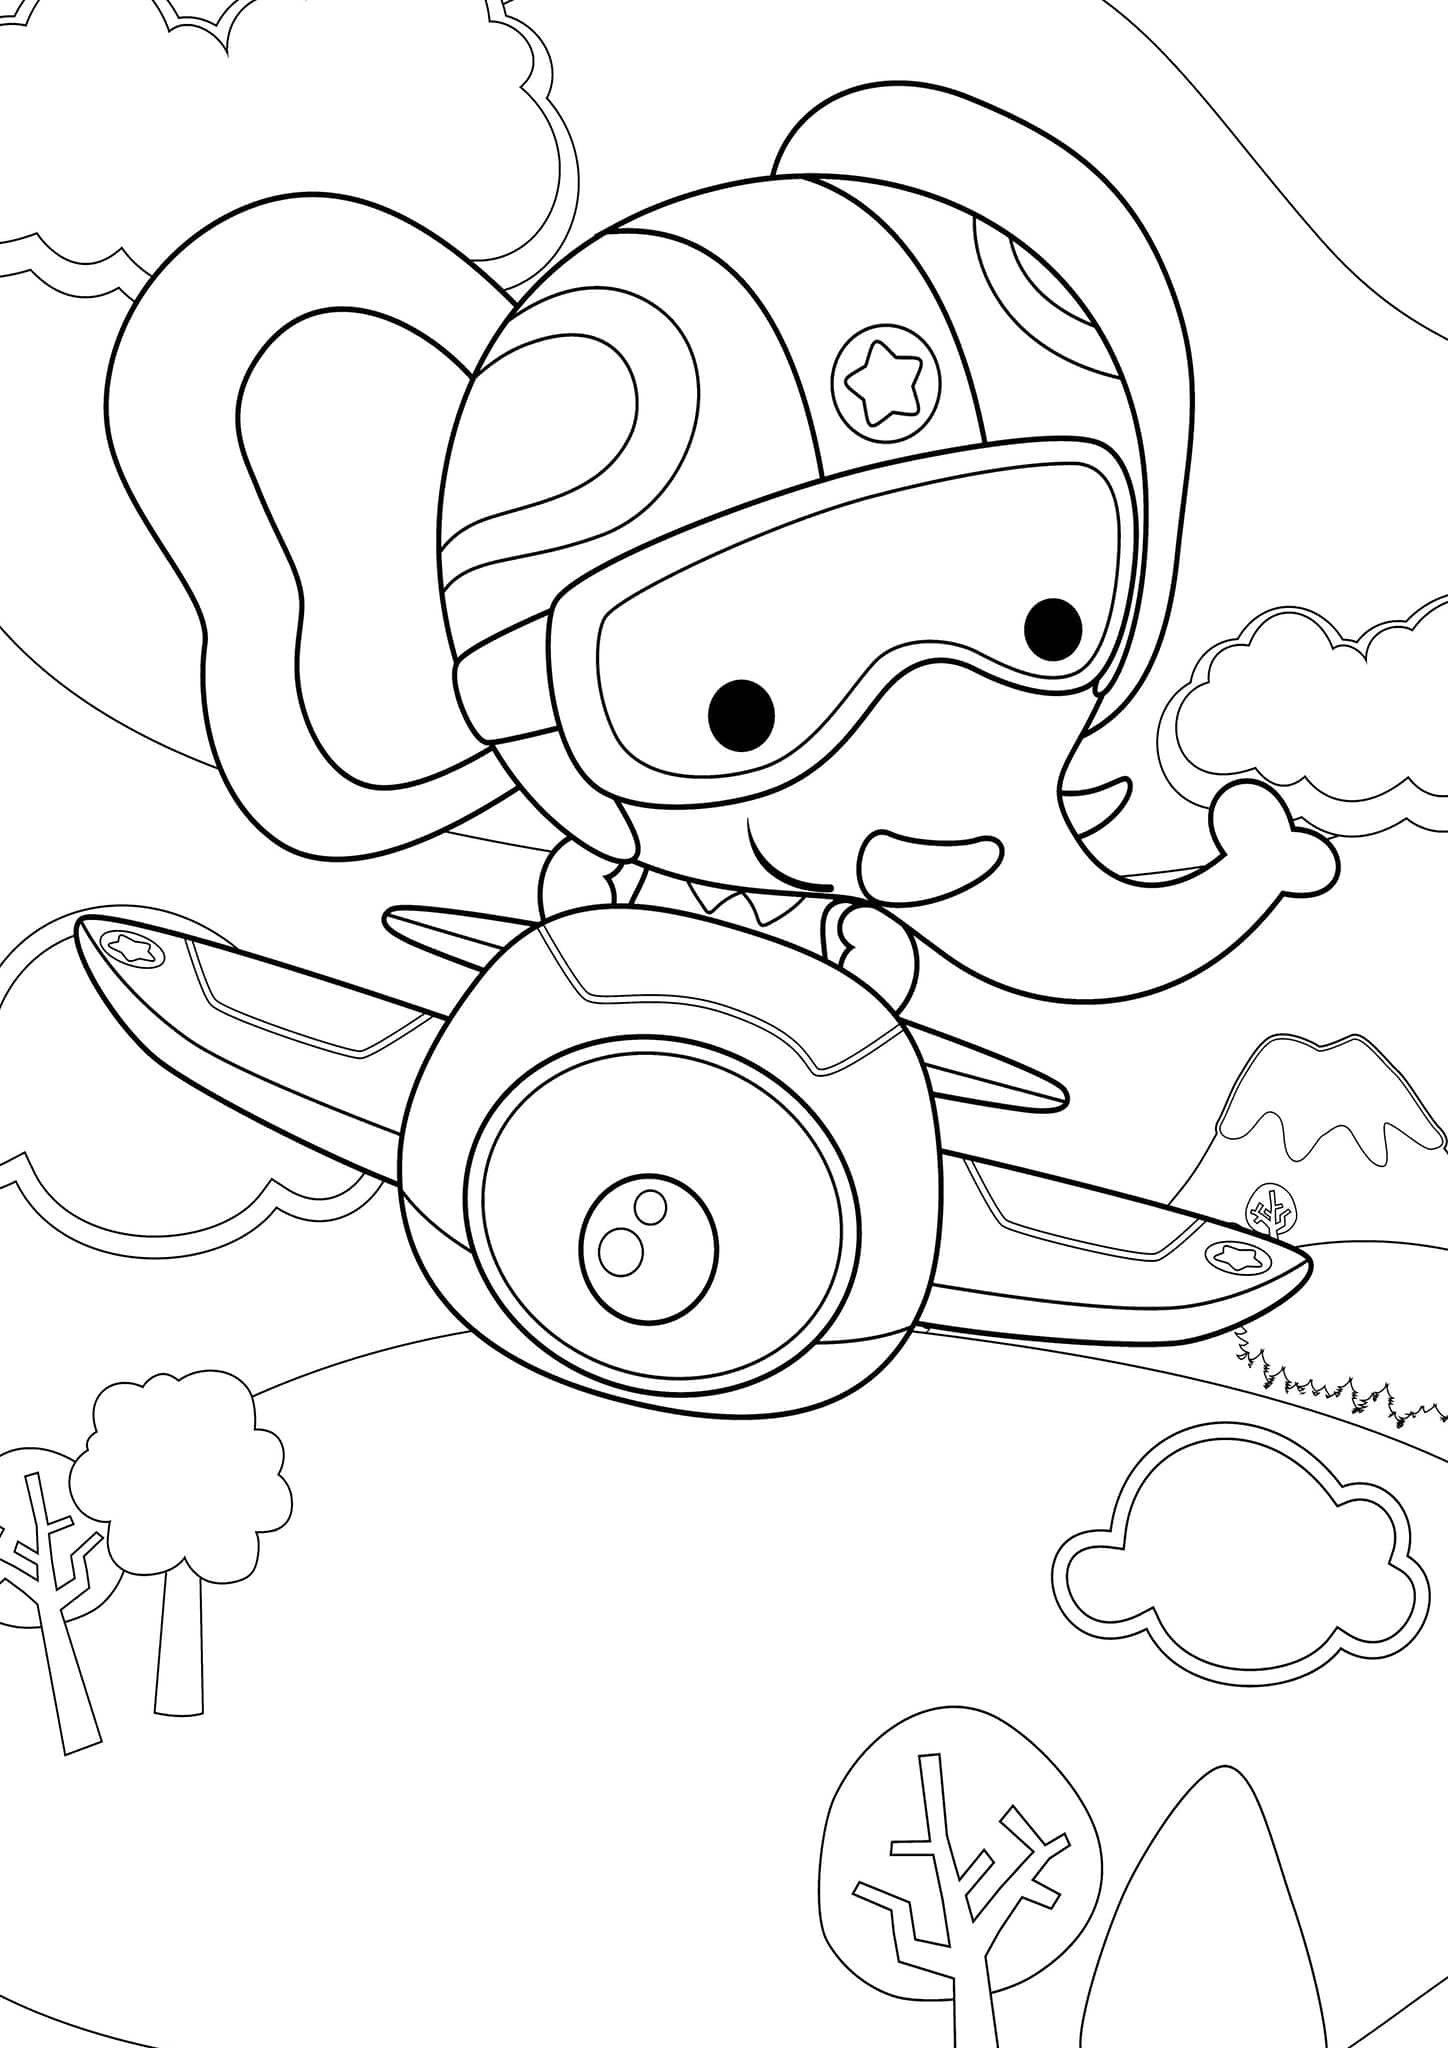 simple elephant coloring page free easy to print elephant coloring pages tulamama coloring page simple elephant